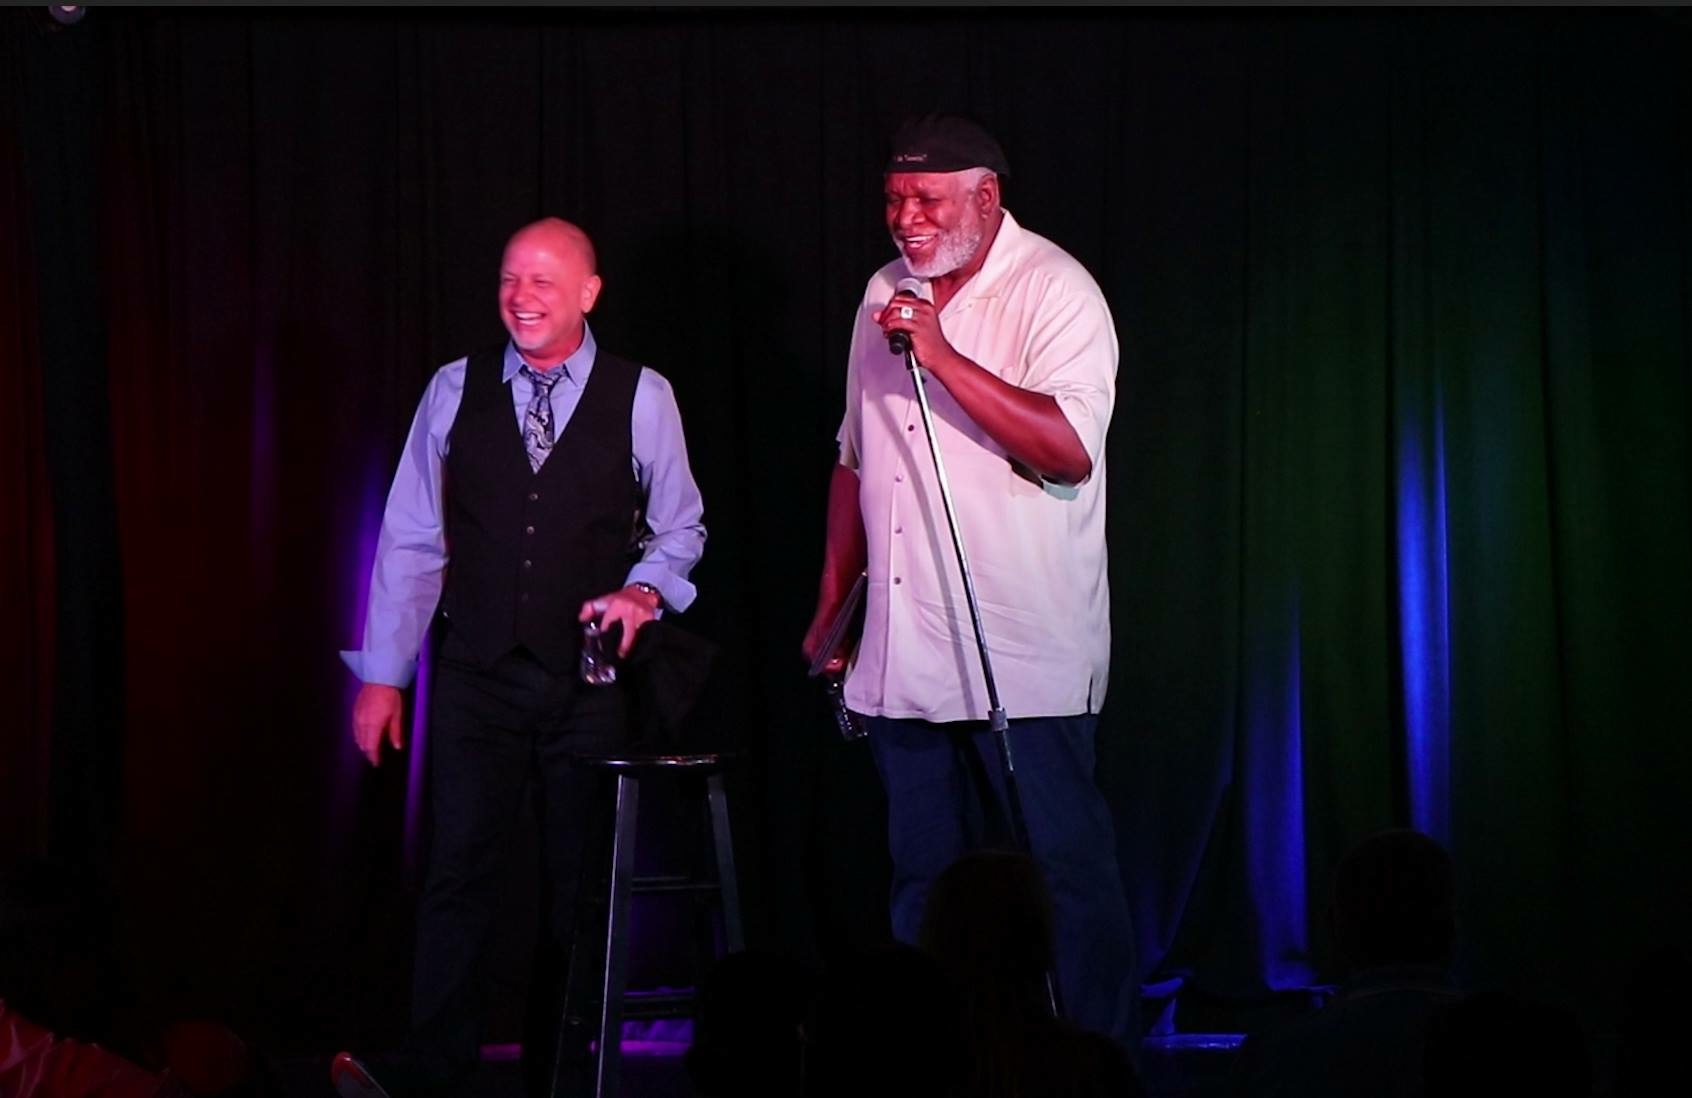 George Wallace and Don Barnhart share the stage at Jokesters Comedy Club